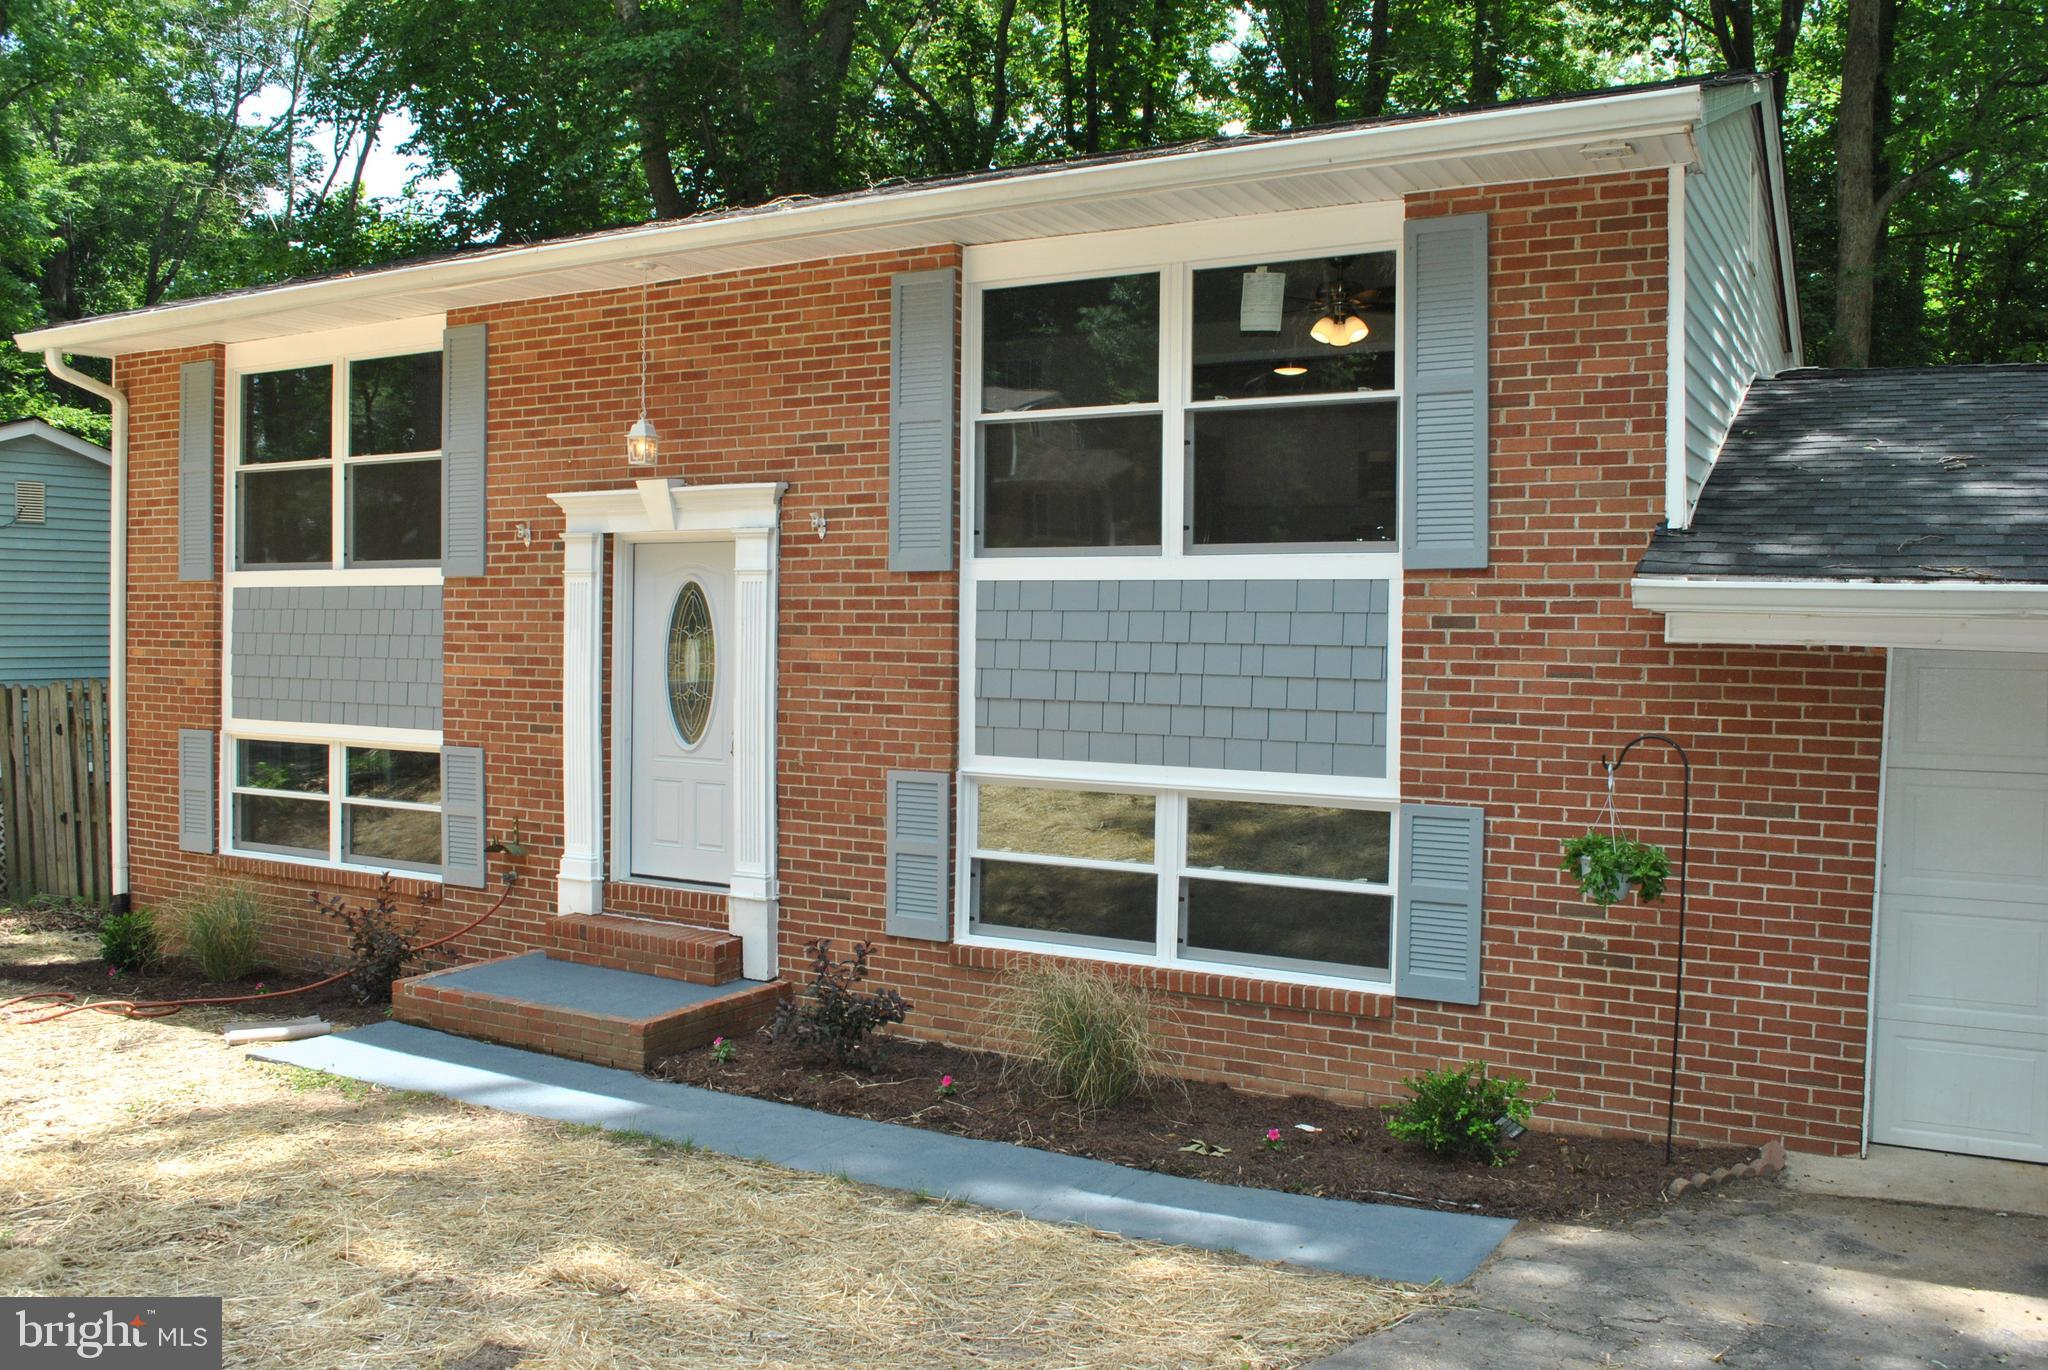 Completely remodeled 4br 2ba split level with updates inside and out!! Everything is brand new with this one..New flooring thru out the home and updated paint for starters!! Brand new kitchen with new cabinets, granite countertops, and stainless steel appliances..The updates do not stop inside, this one has a brand new roof, windows, and new HVAC...and with 4br's and a huge master gives you no wasted space! Schedule your showing today because this one will not last long!!!